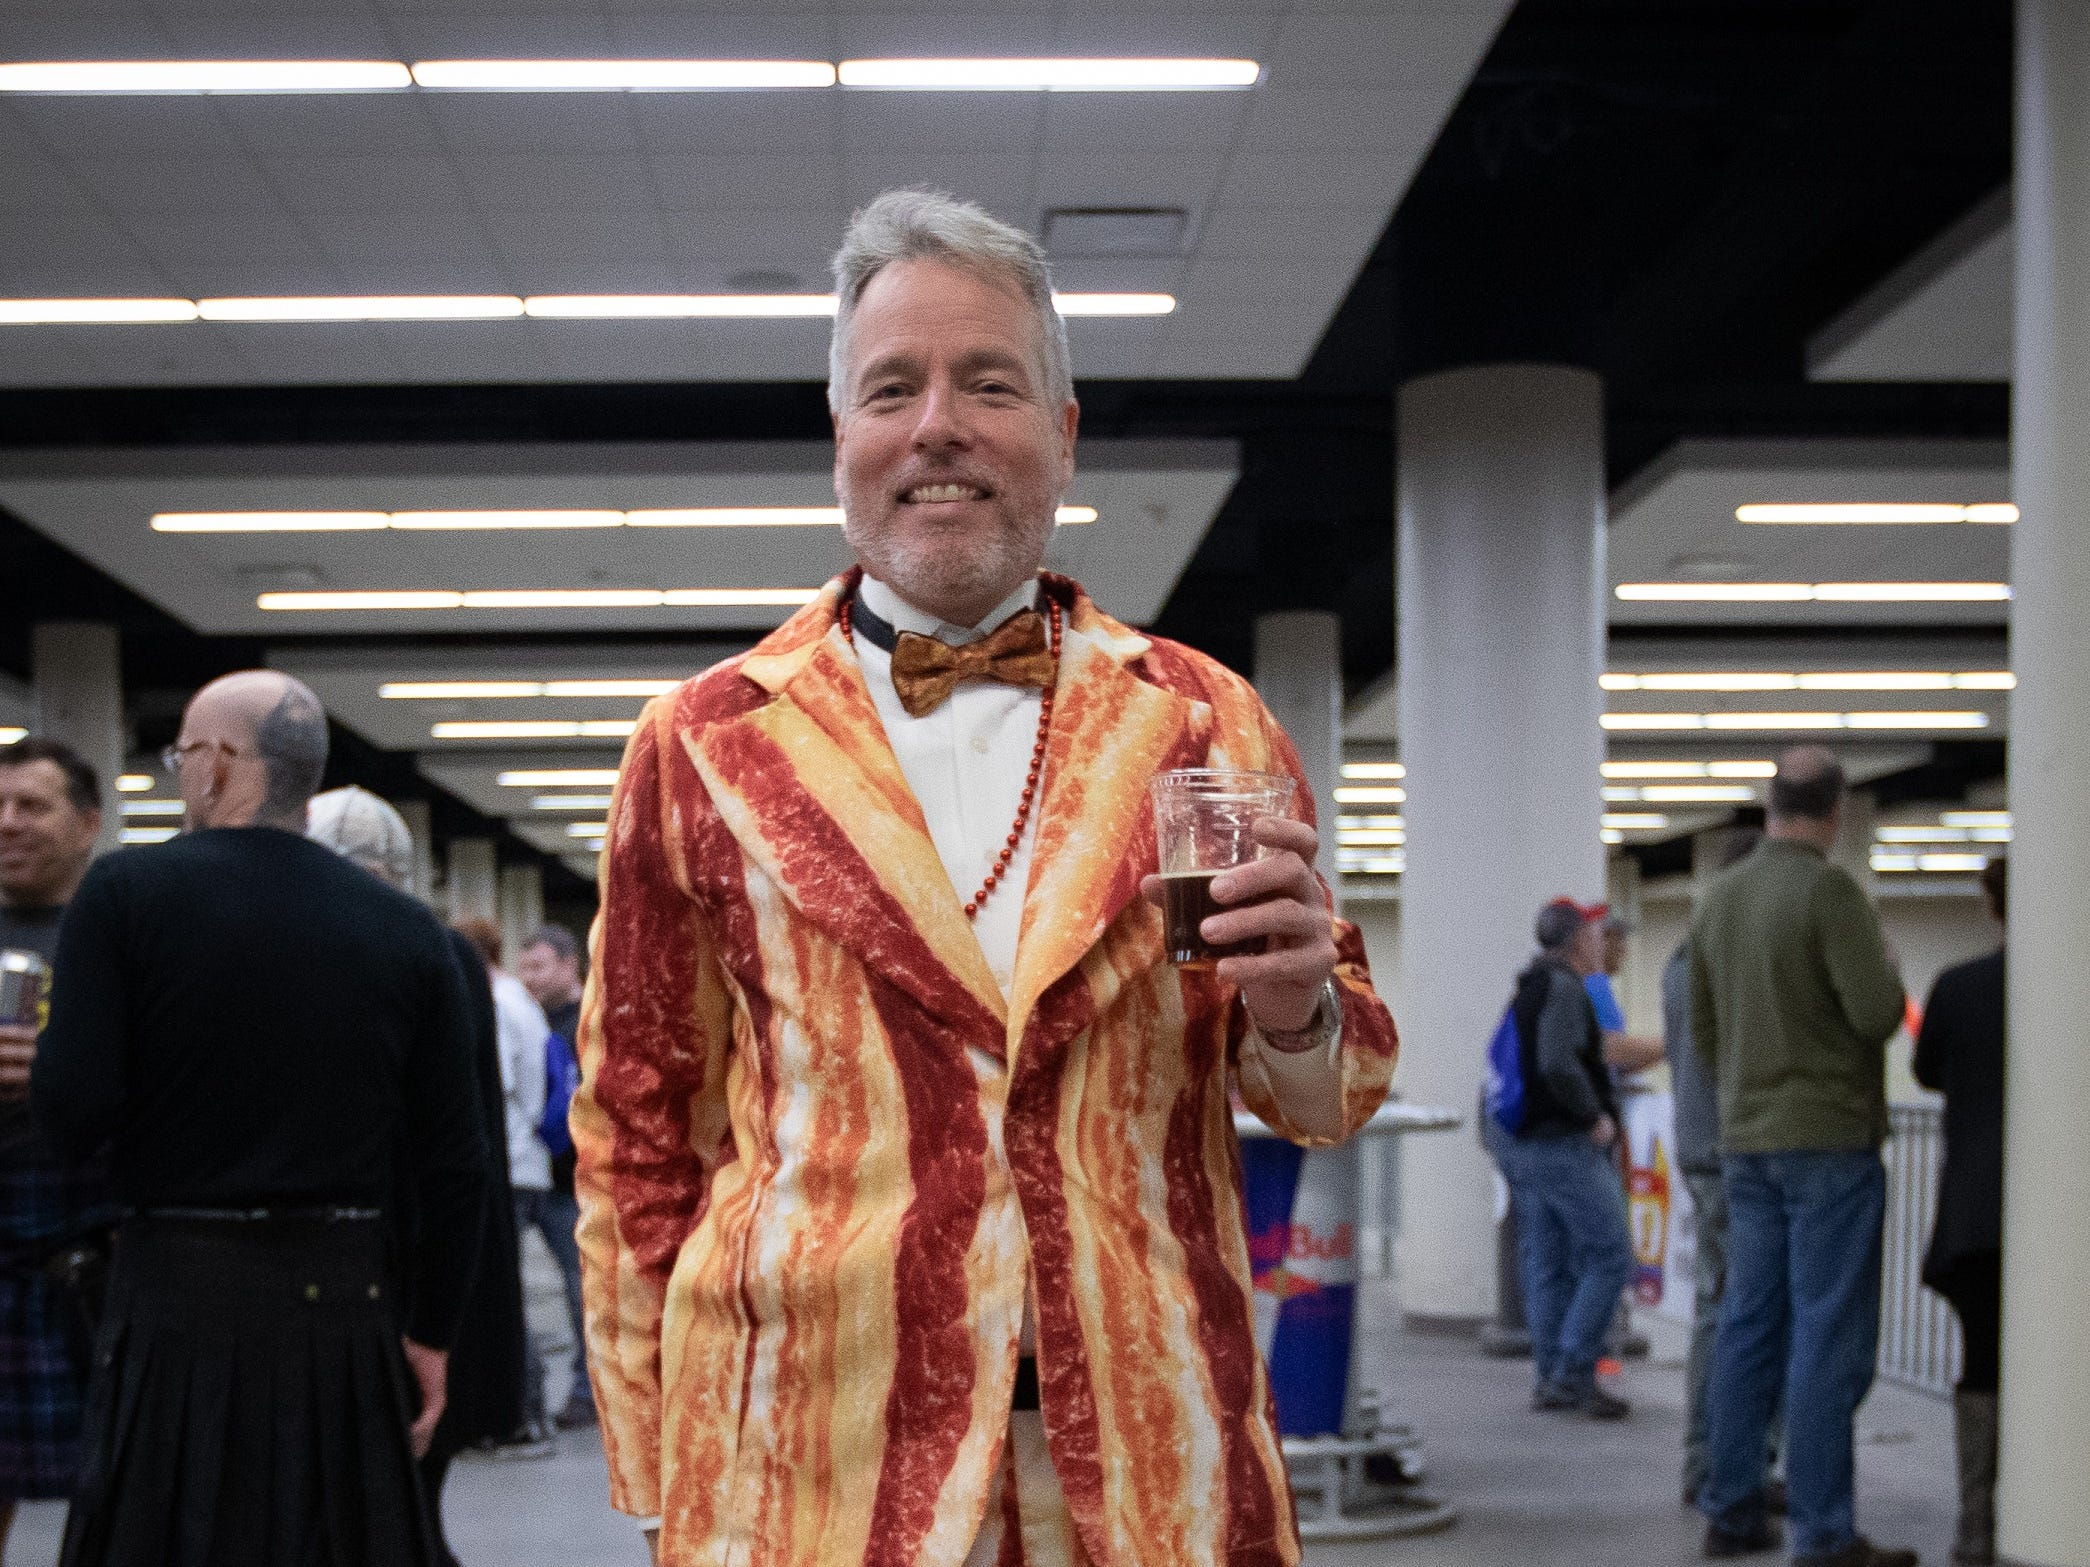 Russell Gilson, of Des Moines, shows off his bacon suit during the Bacon Fest at Hy-Vee Hall on Feb. 16, 2019 in Des Moines, Iowa.